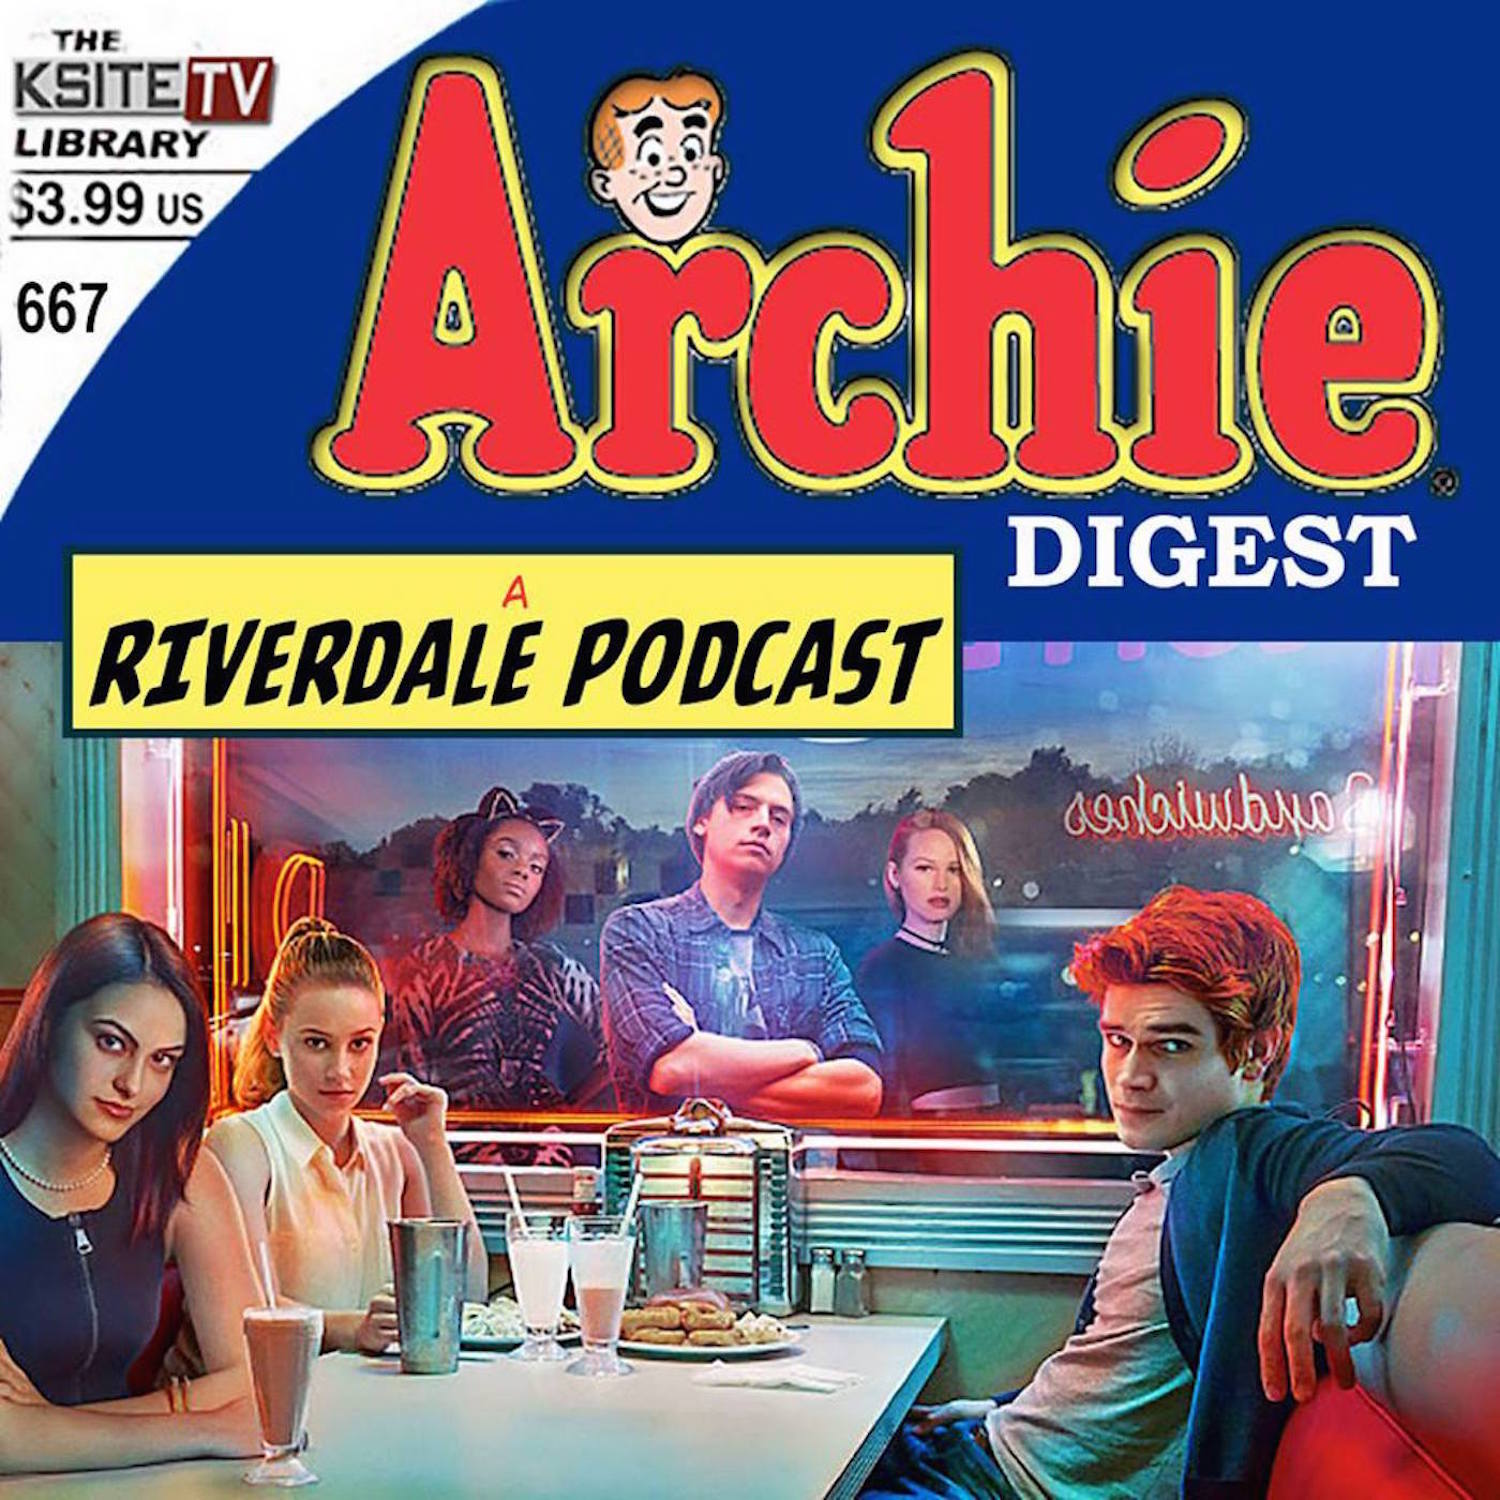 Archie Digest: A Riverdale Podcast